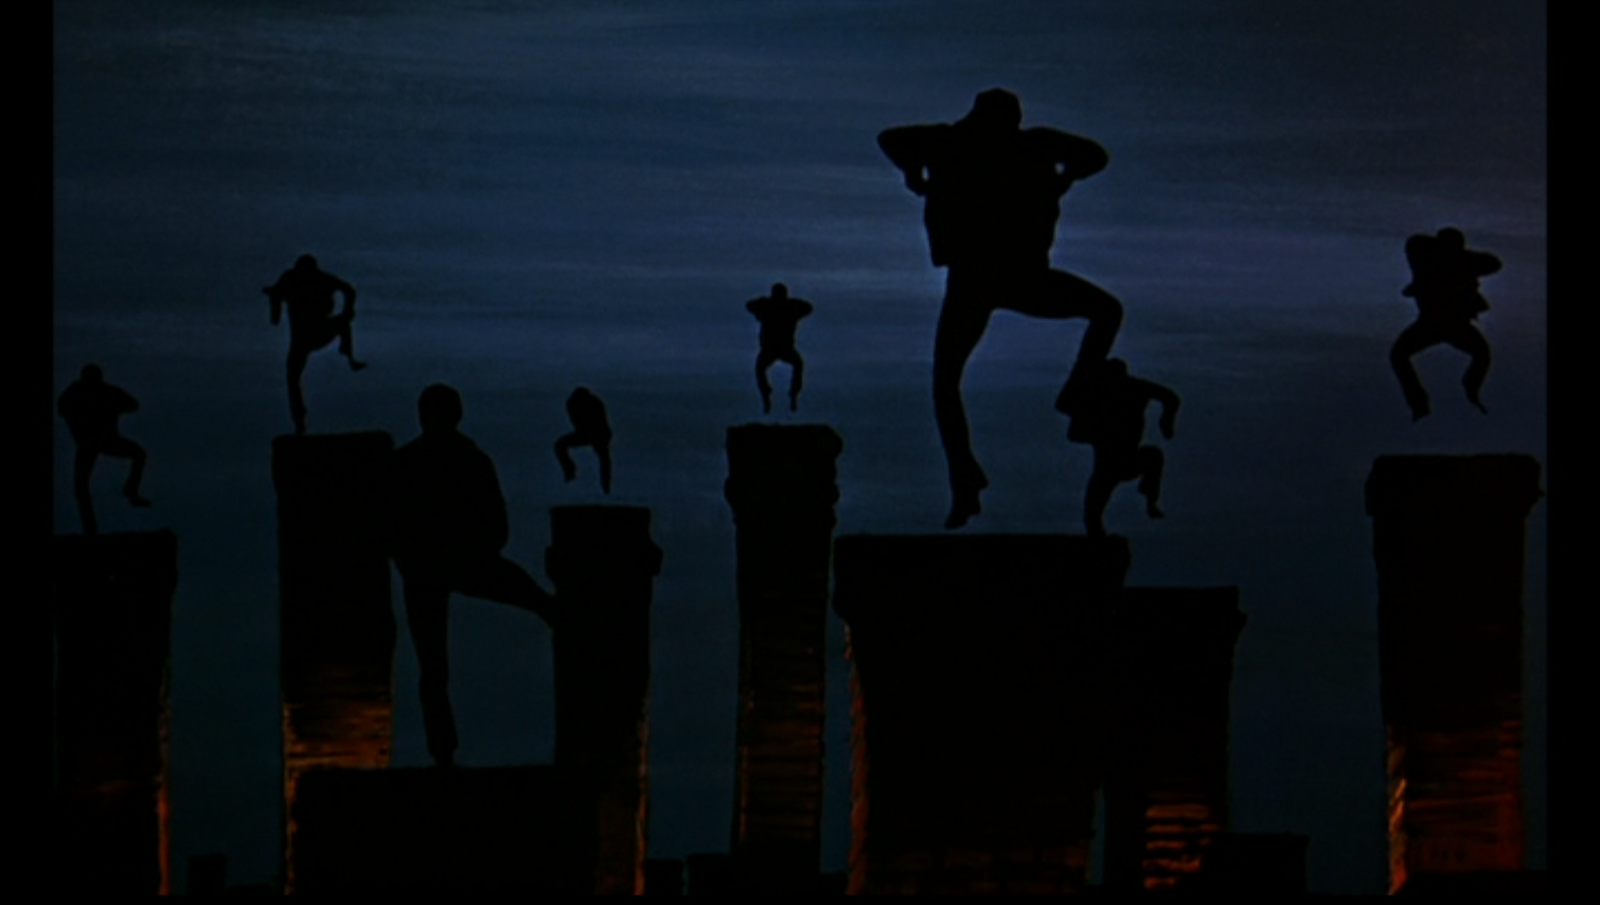 Mary Poppins Chimney Sweep Silhouette Images The Entertainment Junk...